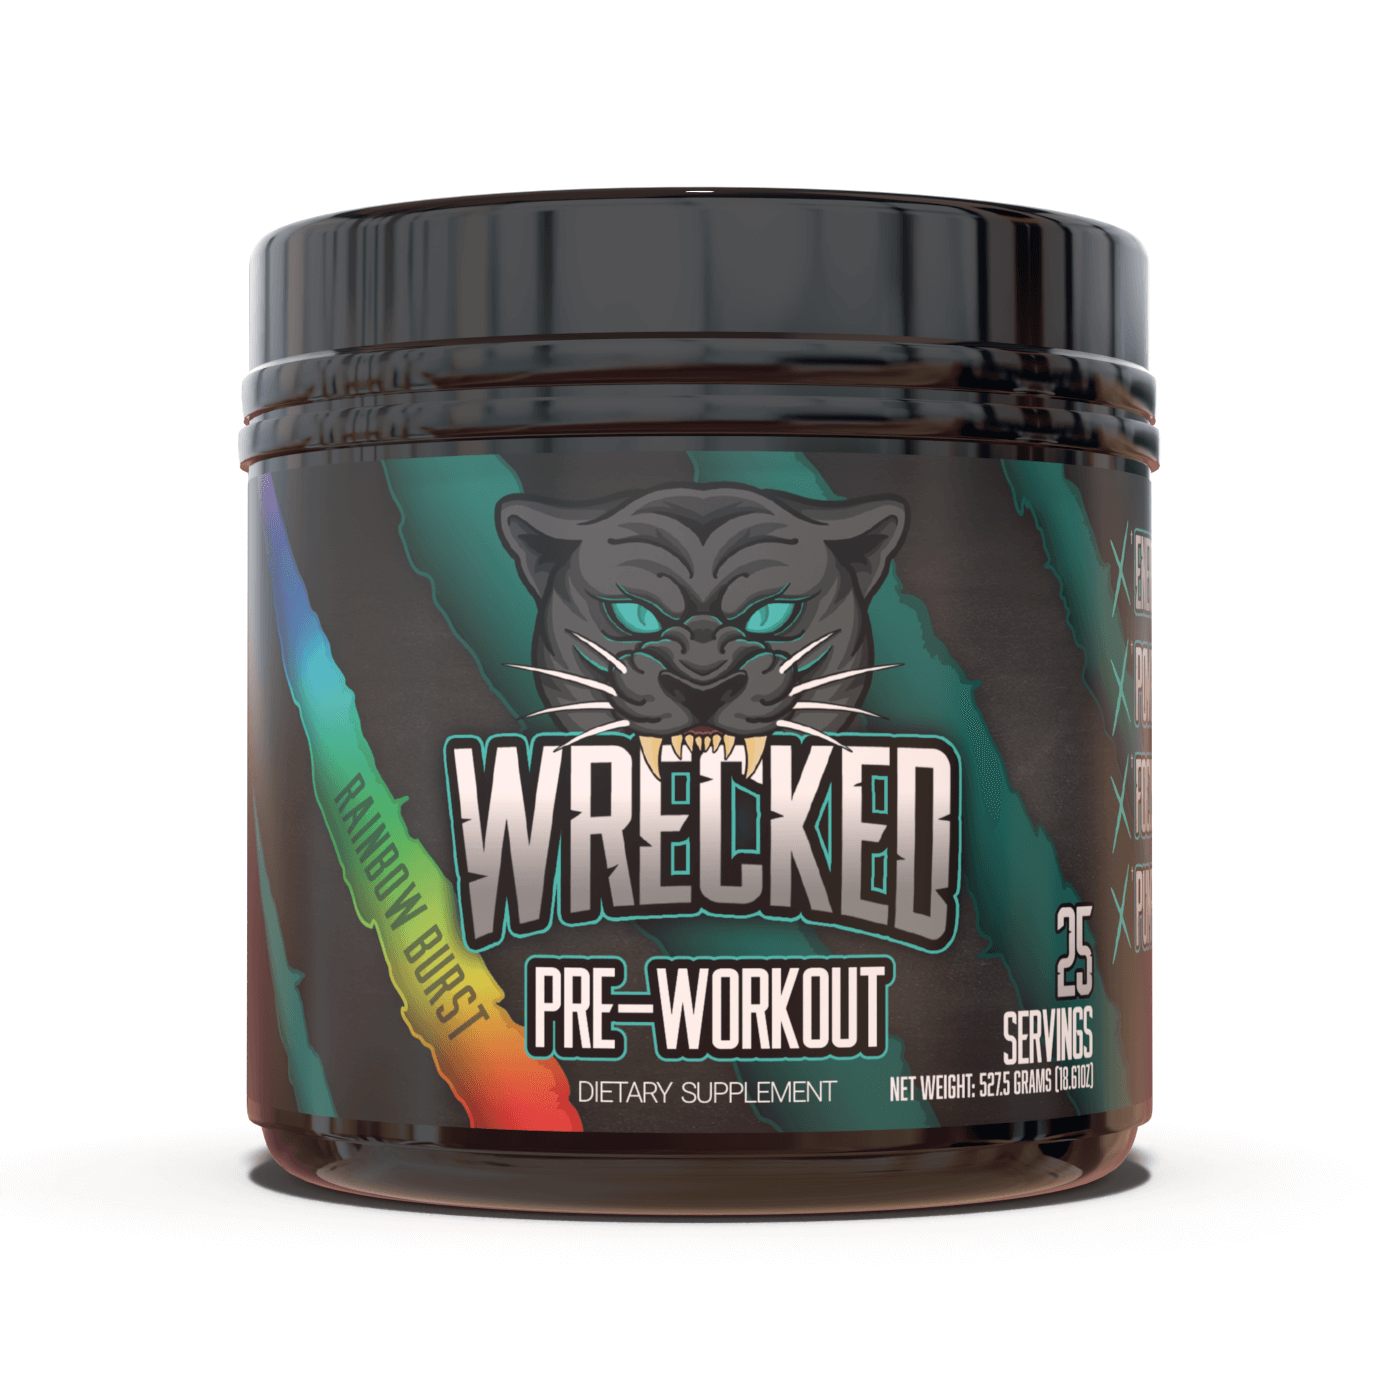 Wrecked Pre-Workout (25 Servings)